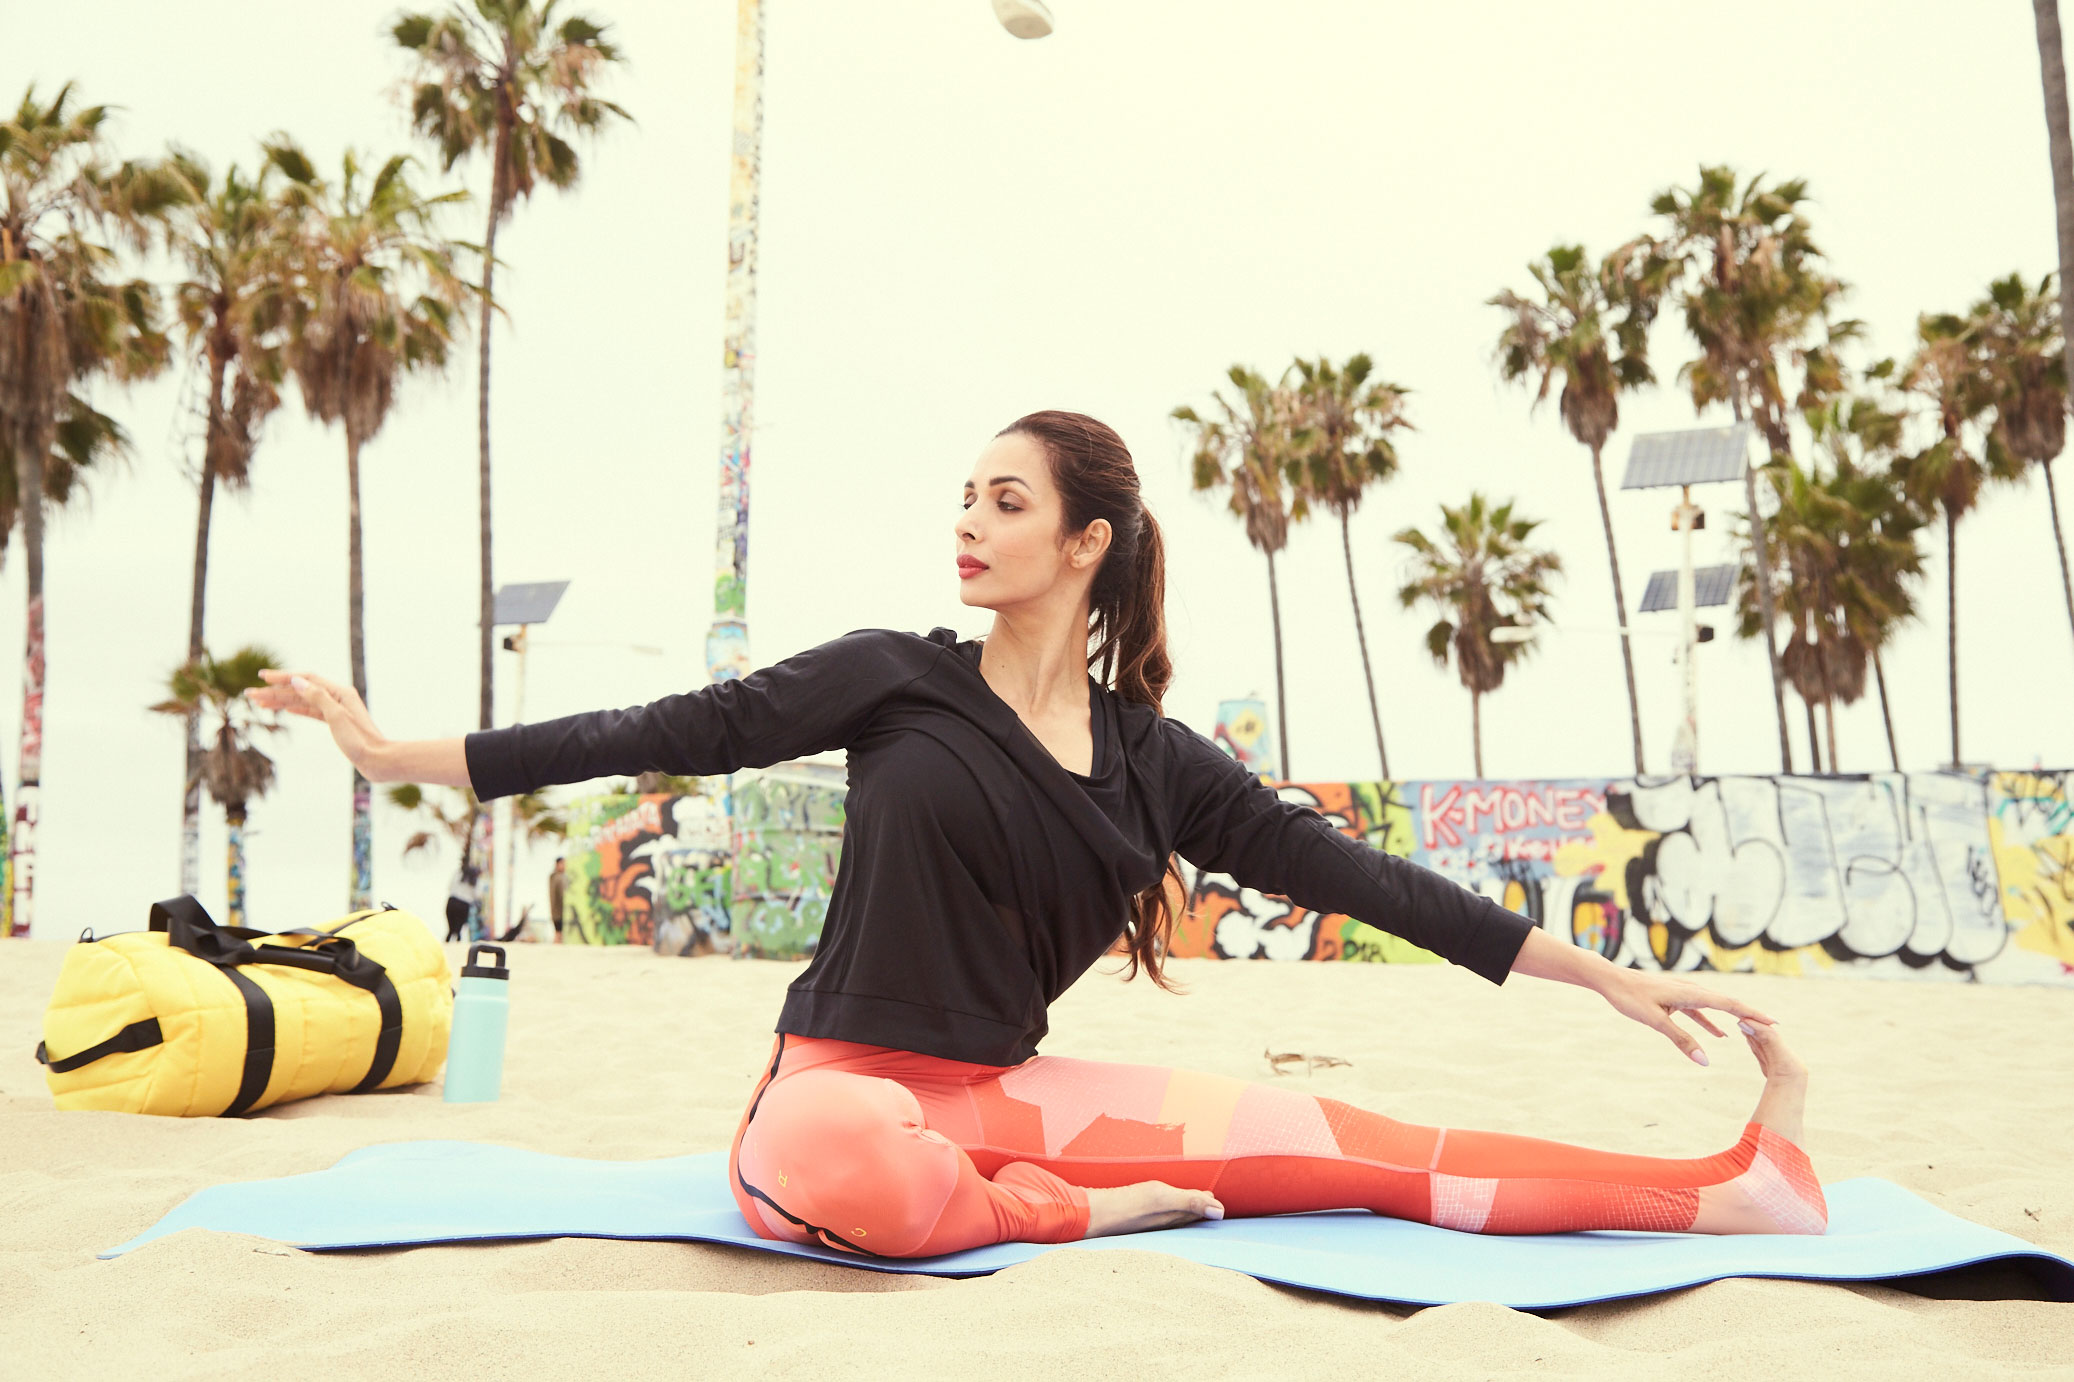 Meet Malaika Arora, the yoga entrepreneur